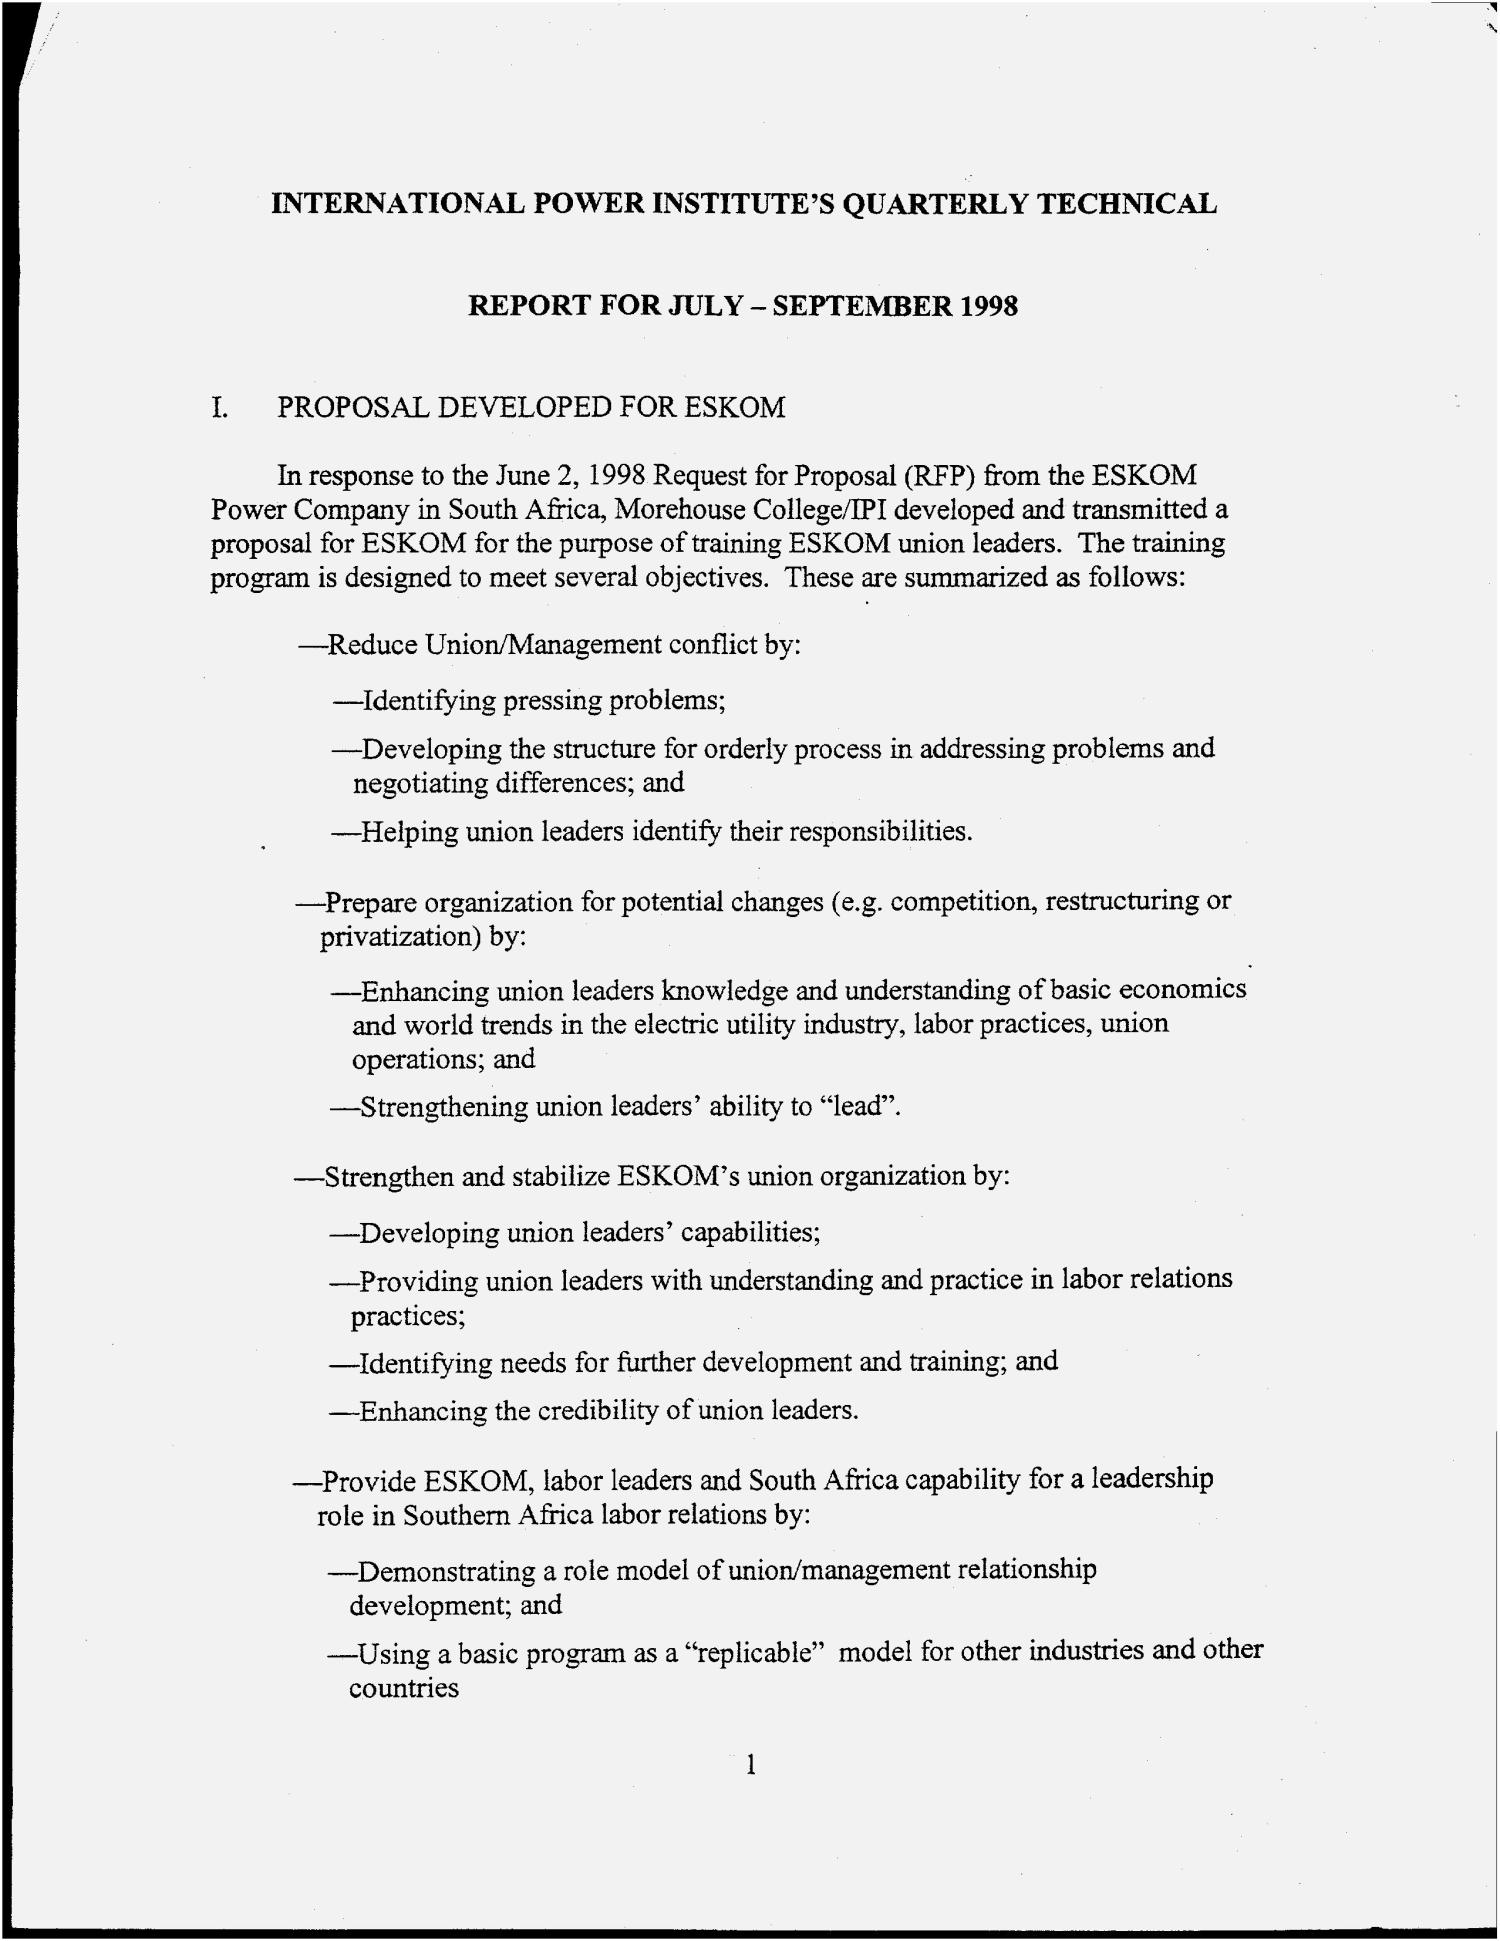 International Power Institute`s quarterly technical progress report, July--September 1998                                                                                                      [Sequence #]: 4 of 56